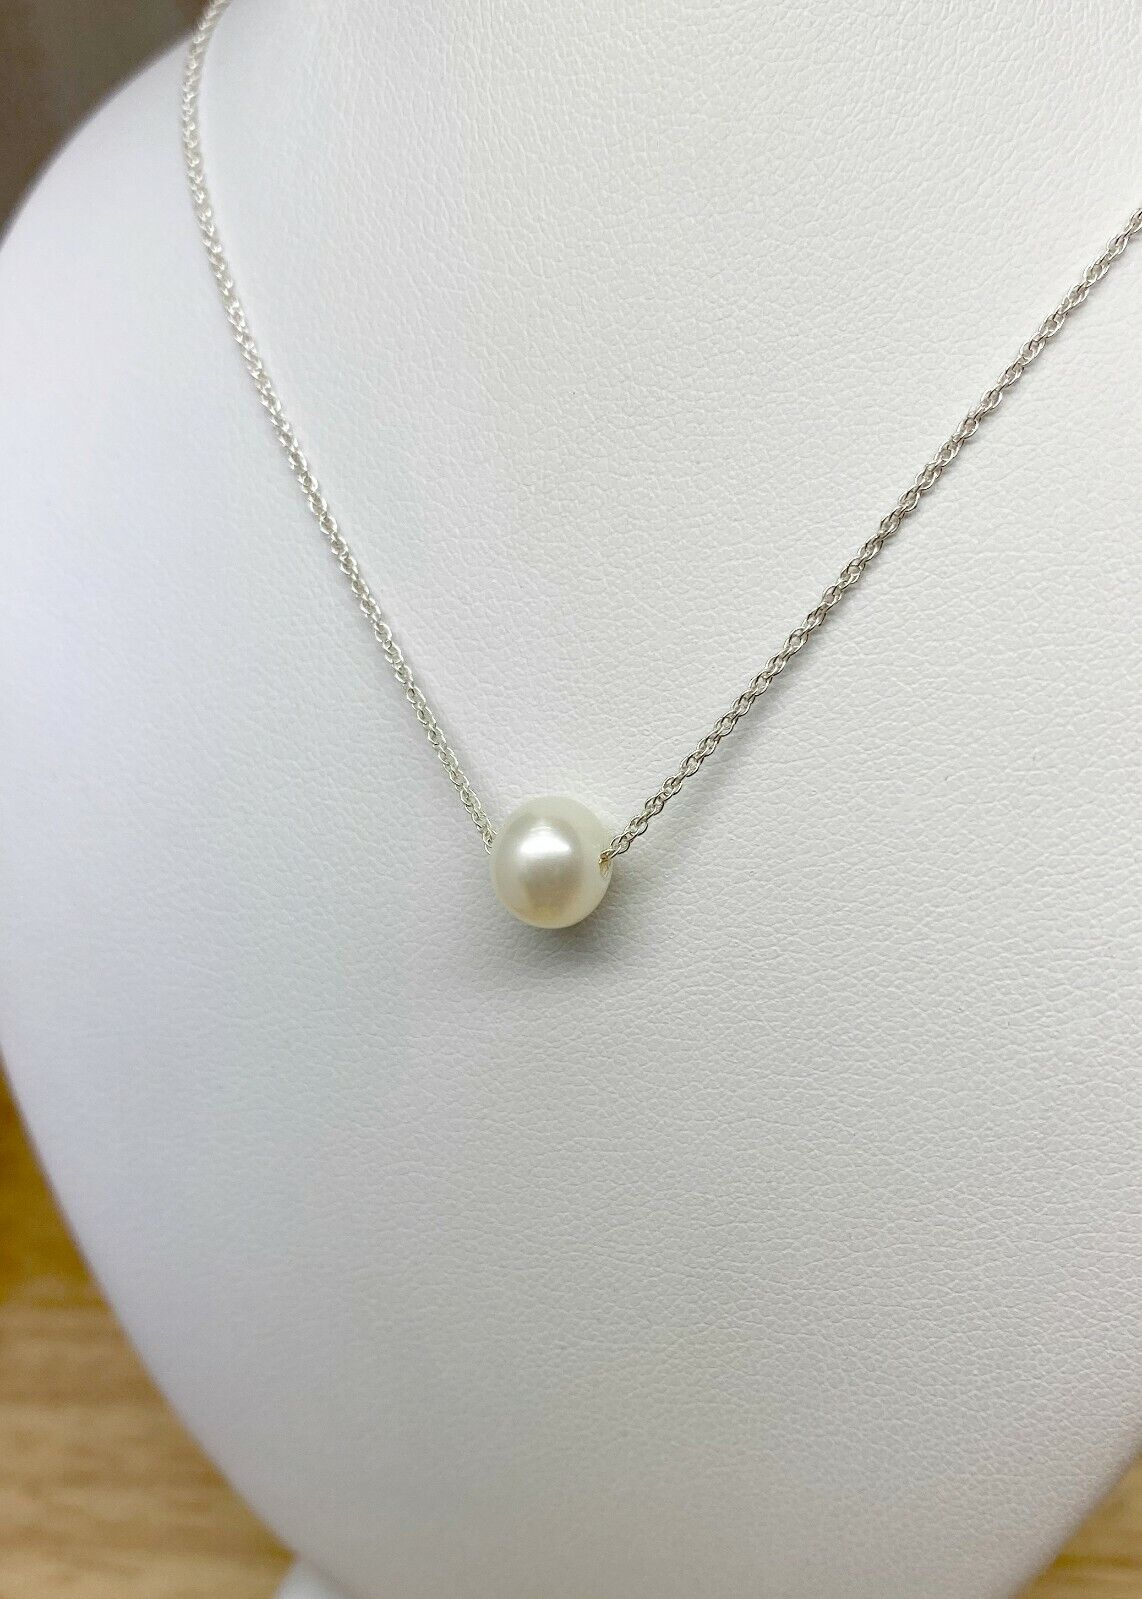 Pearl necklace freshwater semiround AA grade pearl with 925 sterling silver ro